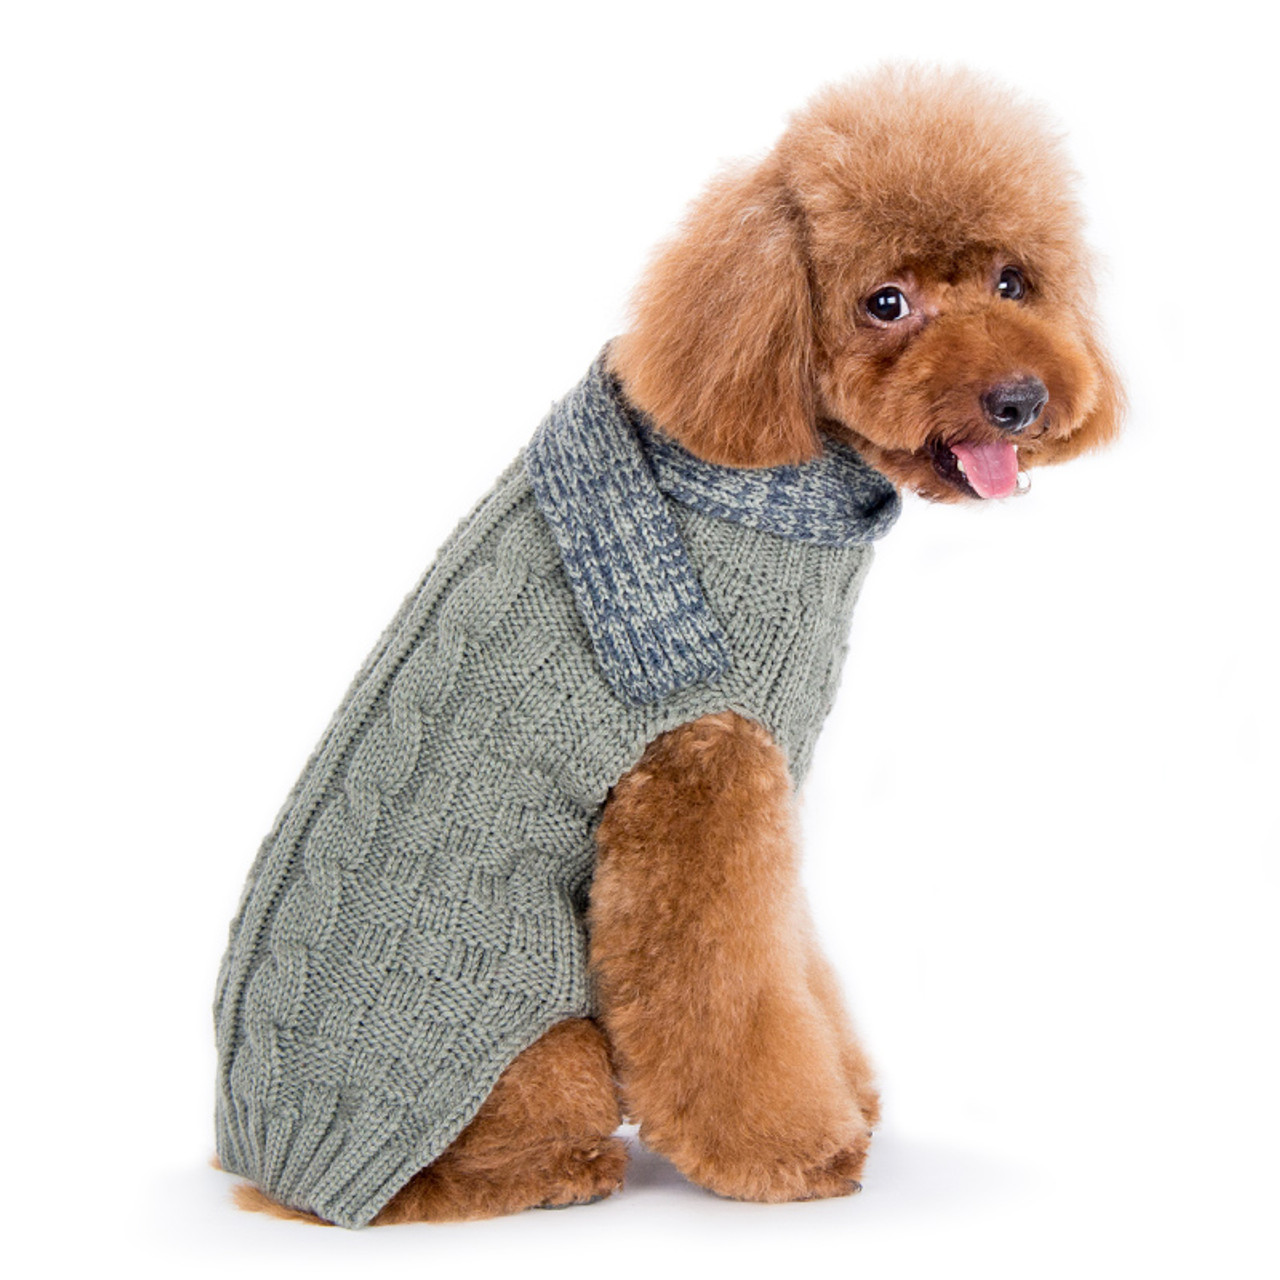 c7d1a04547b1 Urban Cable Scarf Gray Dog Sweater